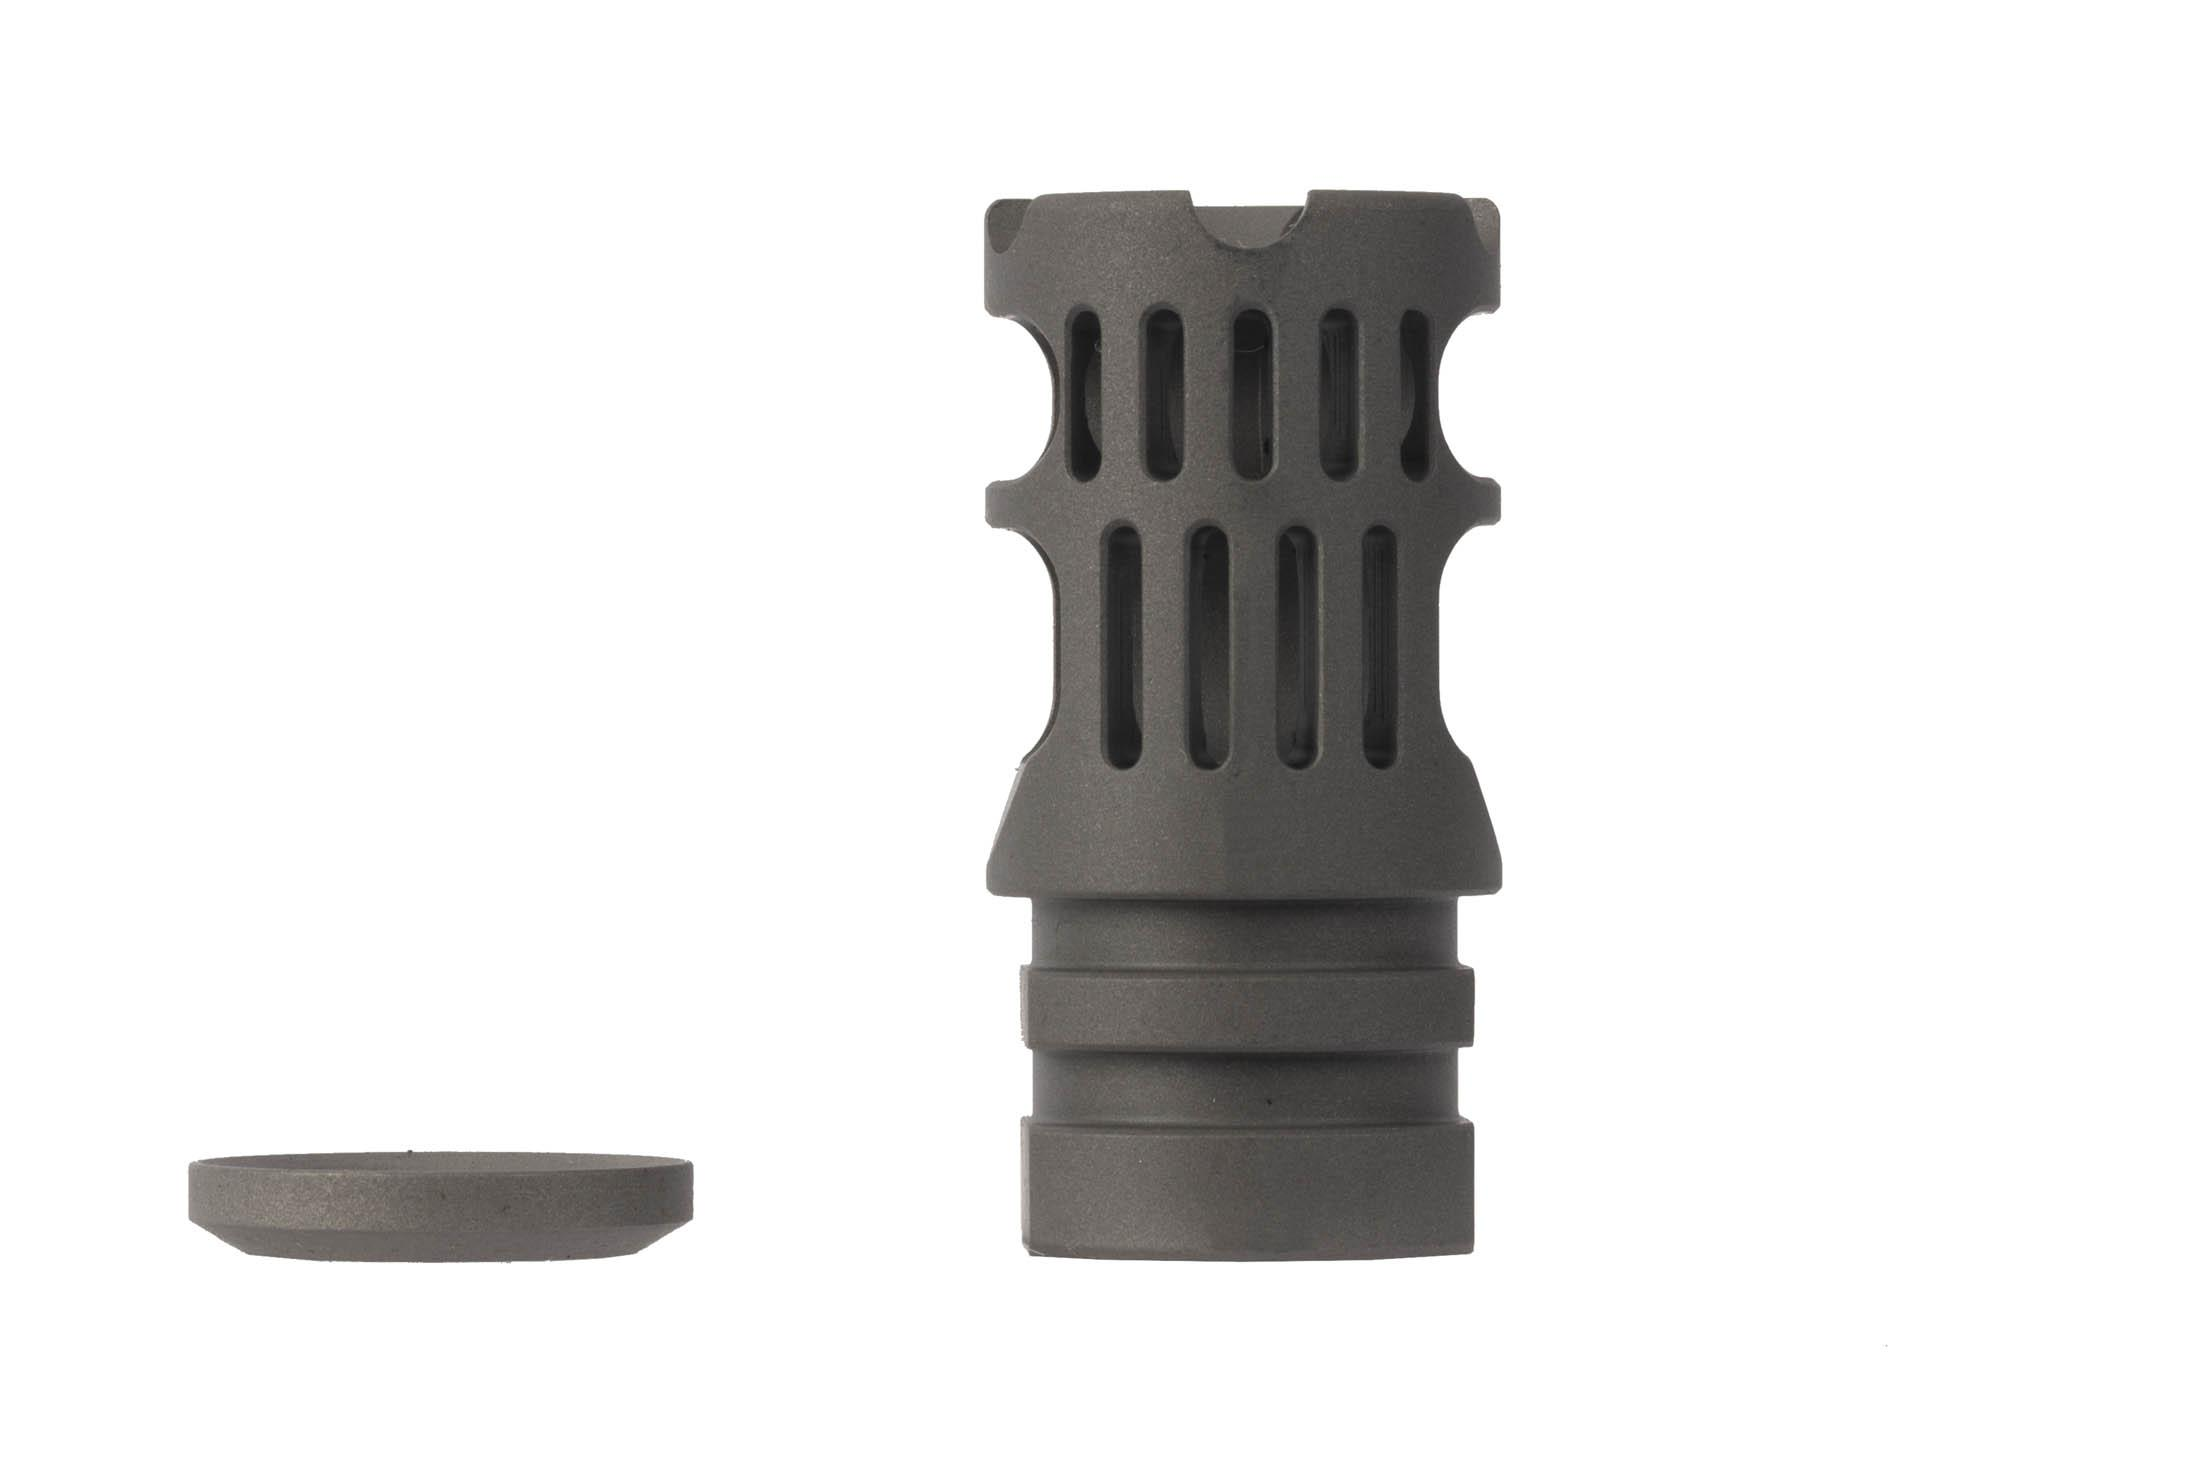 The VG6 Gamma 300BLK High Performance Muzzle Brake includes one crush washer